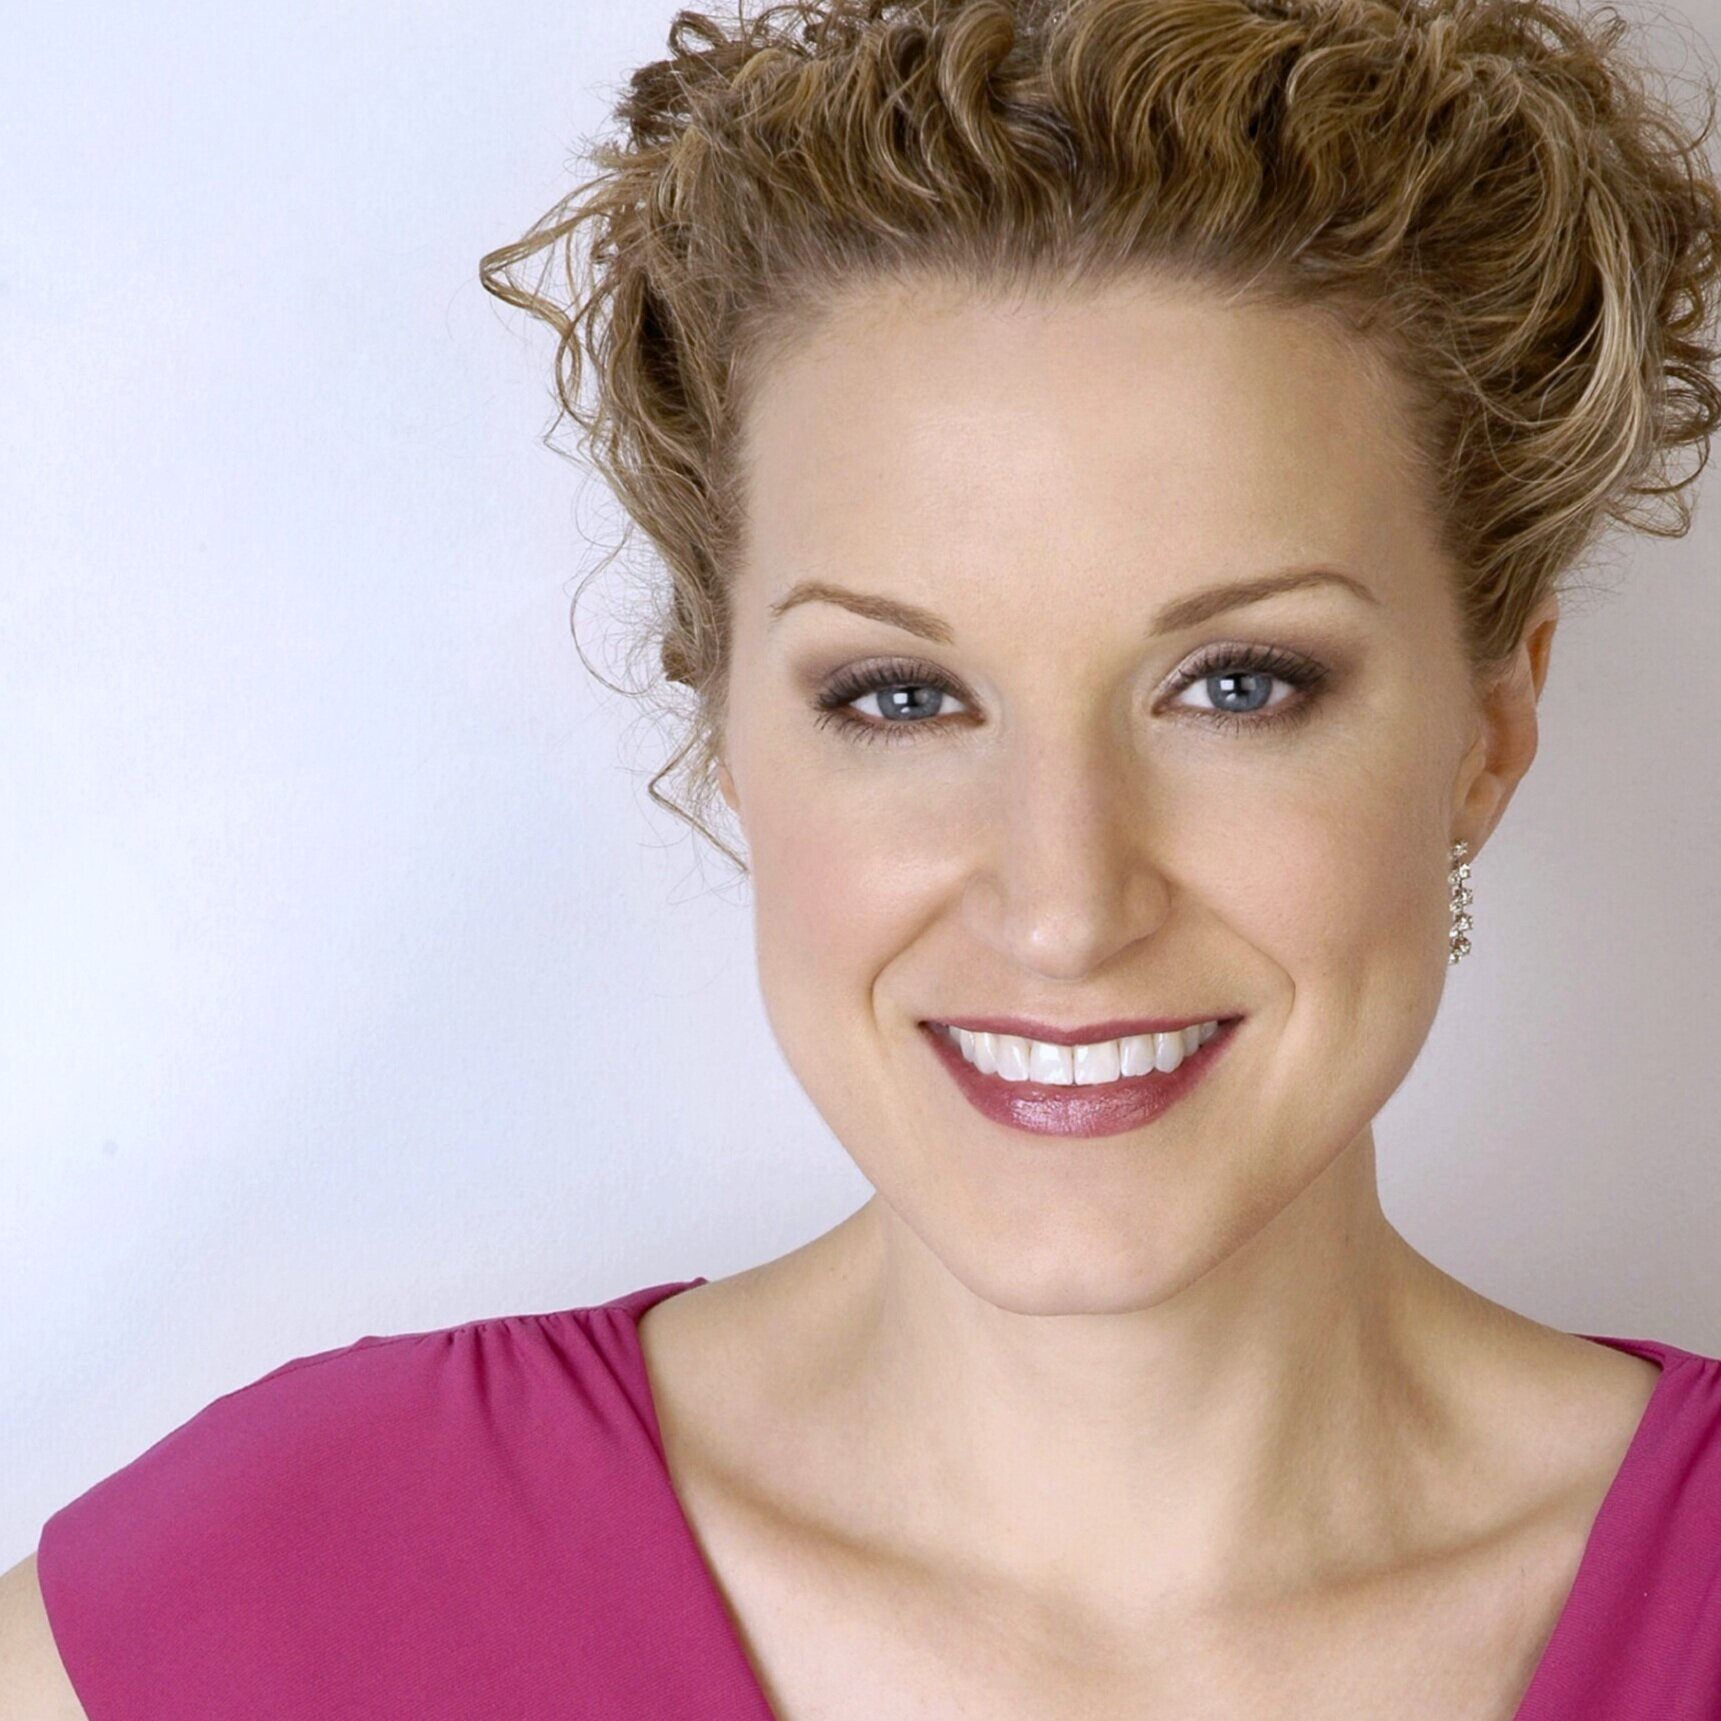 "Caroline Tye - Caroline Tye is thrilled to be returning to the stage with New Camerata Opera, having performed the role of Madame Flora in Menotti's The Medium as a part of NCO's performance piece Triskaidekaphilia. Hailed as ""sultry and amber-voiced"" as Mercédès in Regina Opera's Carmen (Brooklyn Daily Eagle), ""stunning"" for her performance as the Baker's Wife in Saint Petersburg Opera's production of Sondheim's Into The Woods (BroadwayWorld), a ""true embodiment of the role"" in her performance as Madame Flora in Opera Manhattan's The Medium (OperaTeen), as well as ""providing good-natured puffery as Mrs. Malaprop"" in Kirke Mechem's The Rivals (NY Times), other recent credits include Florence Pike in Albert Herring, Flora in La Traviata, Suzuki in Regina Opera's Madama Butterfly, Nancy in Flotow's Martha, Augusta Tabor in The Ballad of Baby Doe, Alice Ford in Ralph Vaughan Williams' Sir John in Love, the title role in Carmen with Delaware Valley Opera, Madame de Haltière in Utopia Opera's Cendrillon, the title role in Bronx Opera's La Cenerentola, Mother Goose in Stravinski's The Rake's Progress, Dido in Dido and Aeneas, Mercédès in Saint Petersburg Opera's production of Carmen, Isabella in L'Italiana in Algeri, Jo March in Little Women, Ulrica in Un ballo in maschera, Dalila in Samson et Dalila, Adalgisa in Norma, Dorabella in Così fan tutte, and Maddalena in Delaware Valley Opera's Rigoletto. Upcoming roles include the title role in Carmen. Caroline recently received a Master's Degree in Music – Vocal Performance from The Boston Conservatory, and is a student of Lenora Eve."